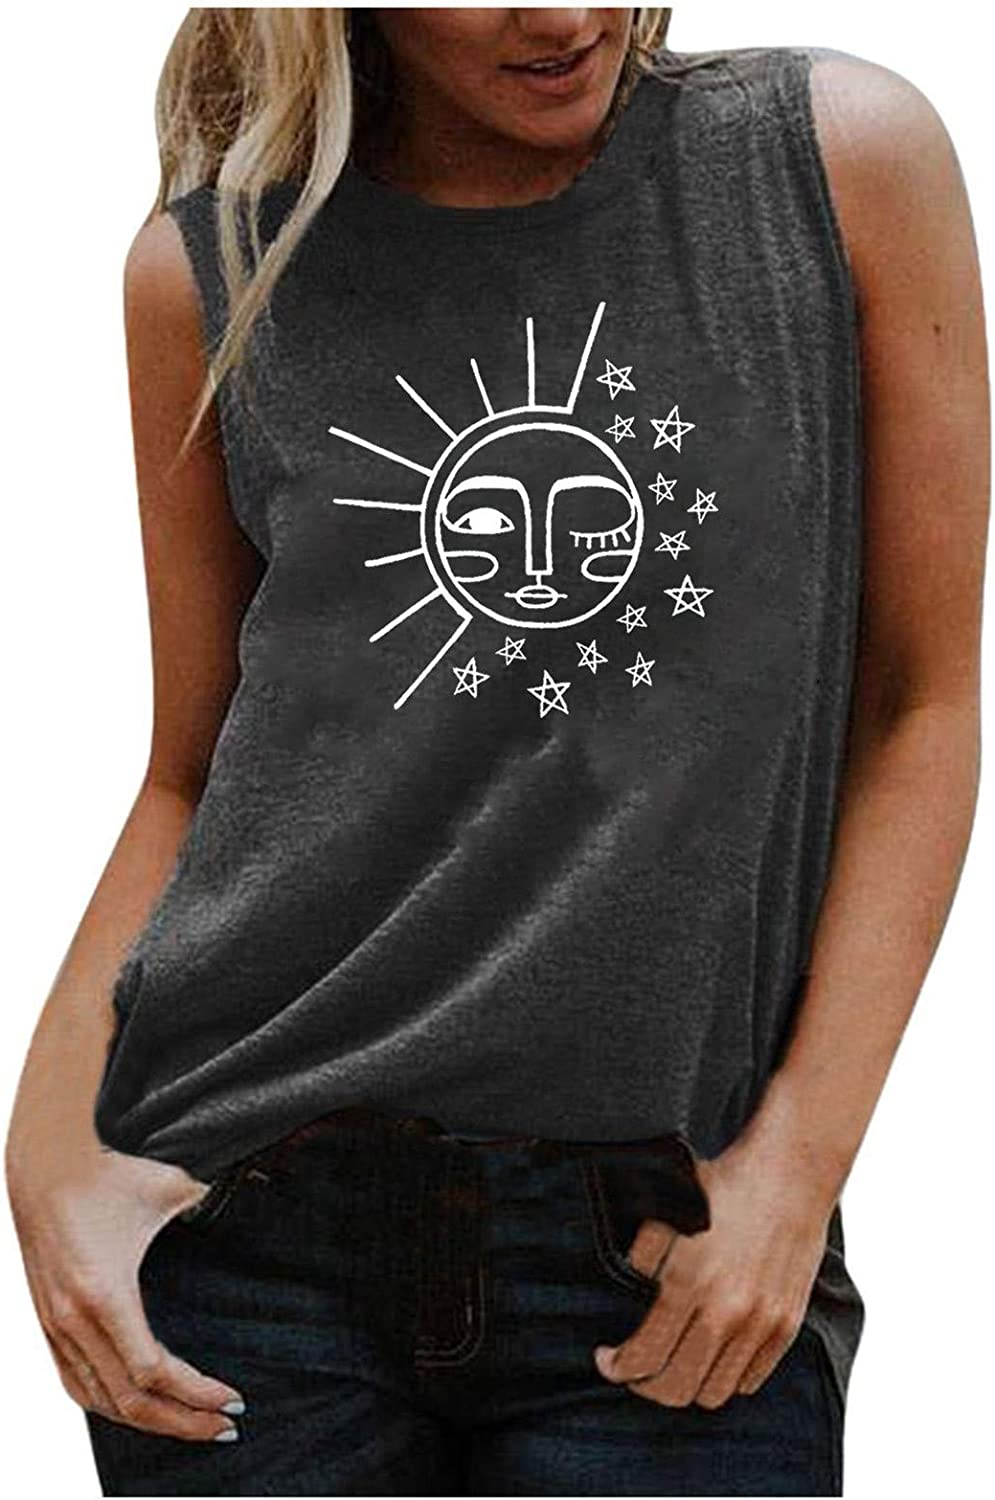 Tank Tops for Women Loose Fit,Womens Summer Top Graphic Printed Shirts Sleeveless Blouse Soft Workout Tee